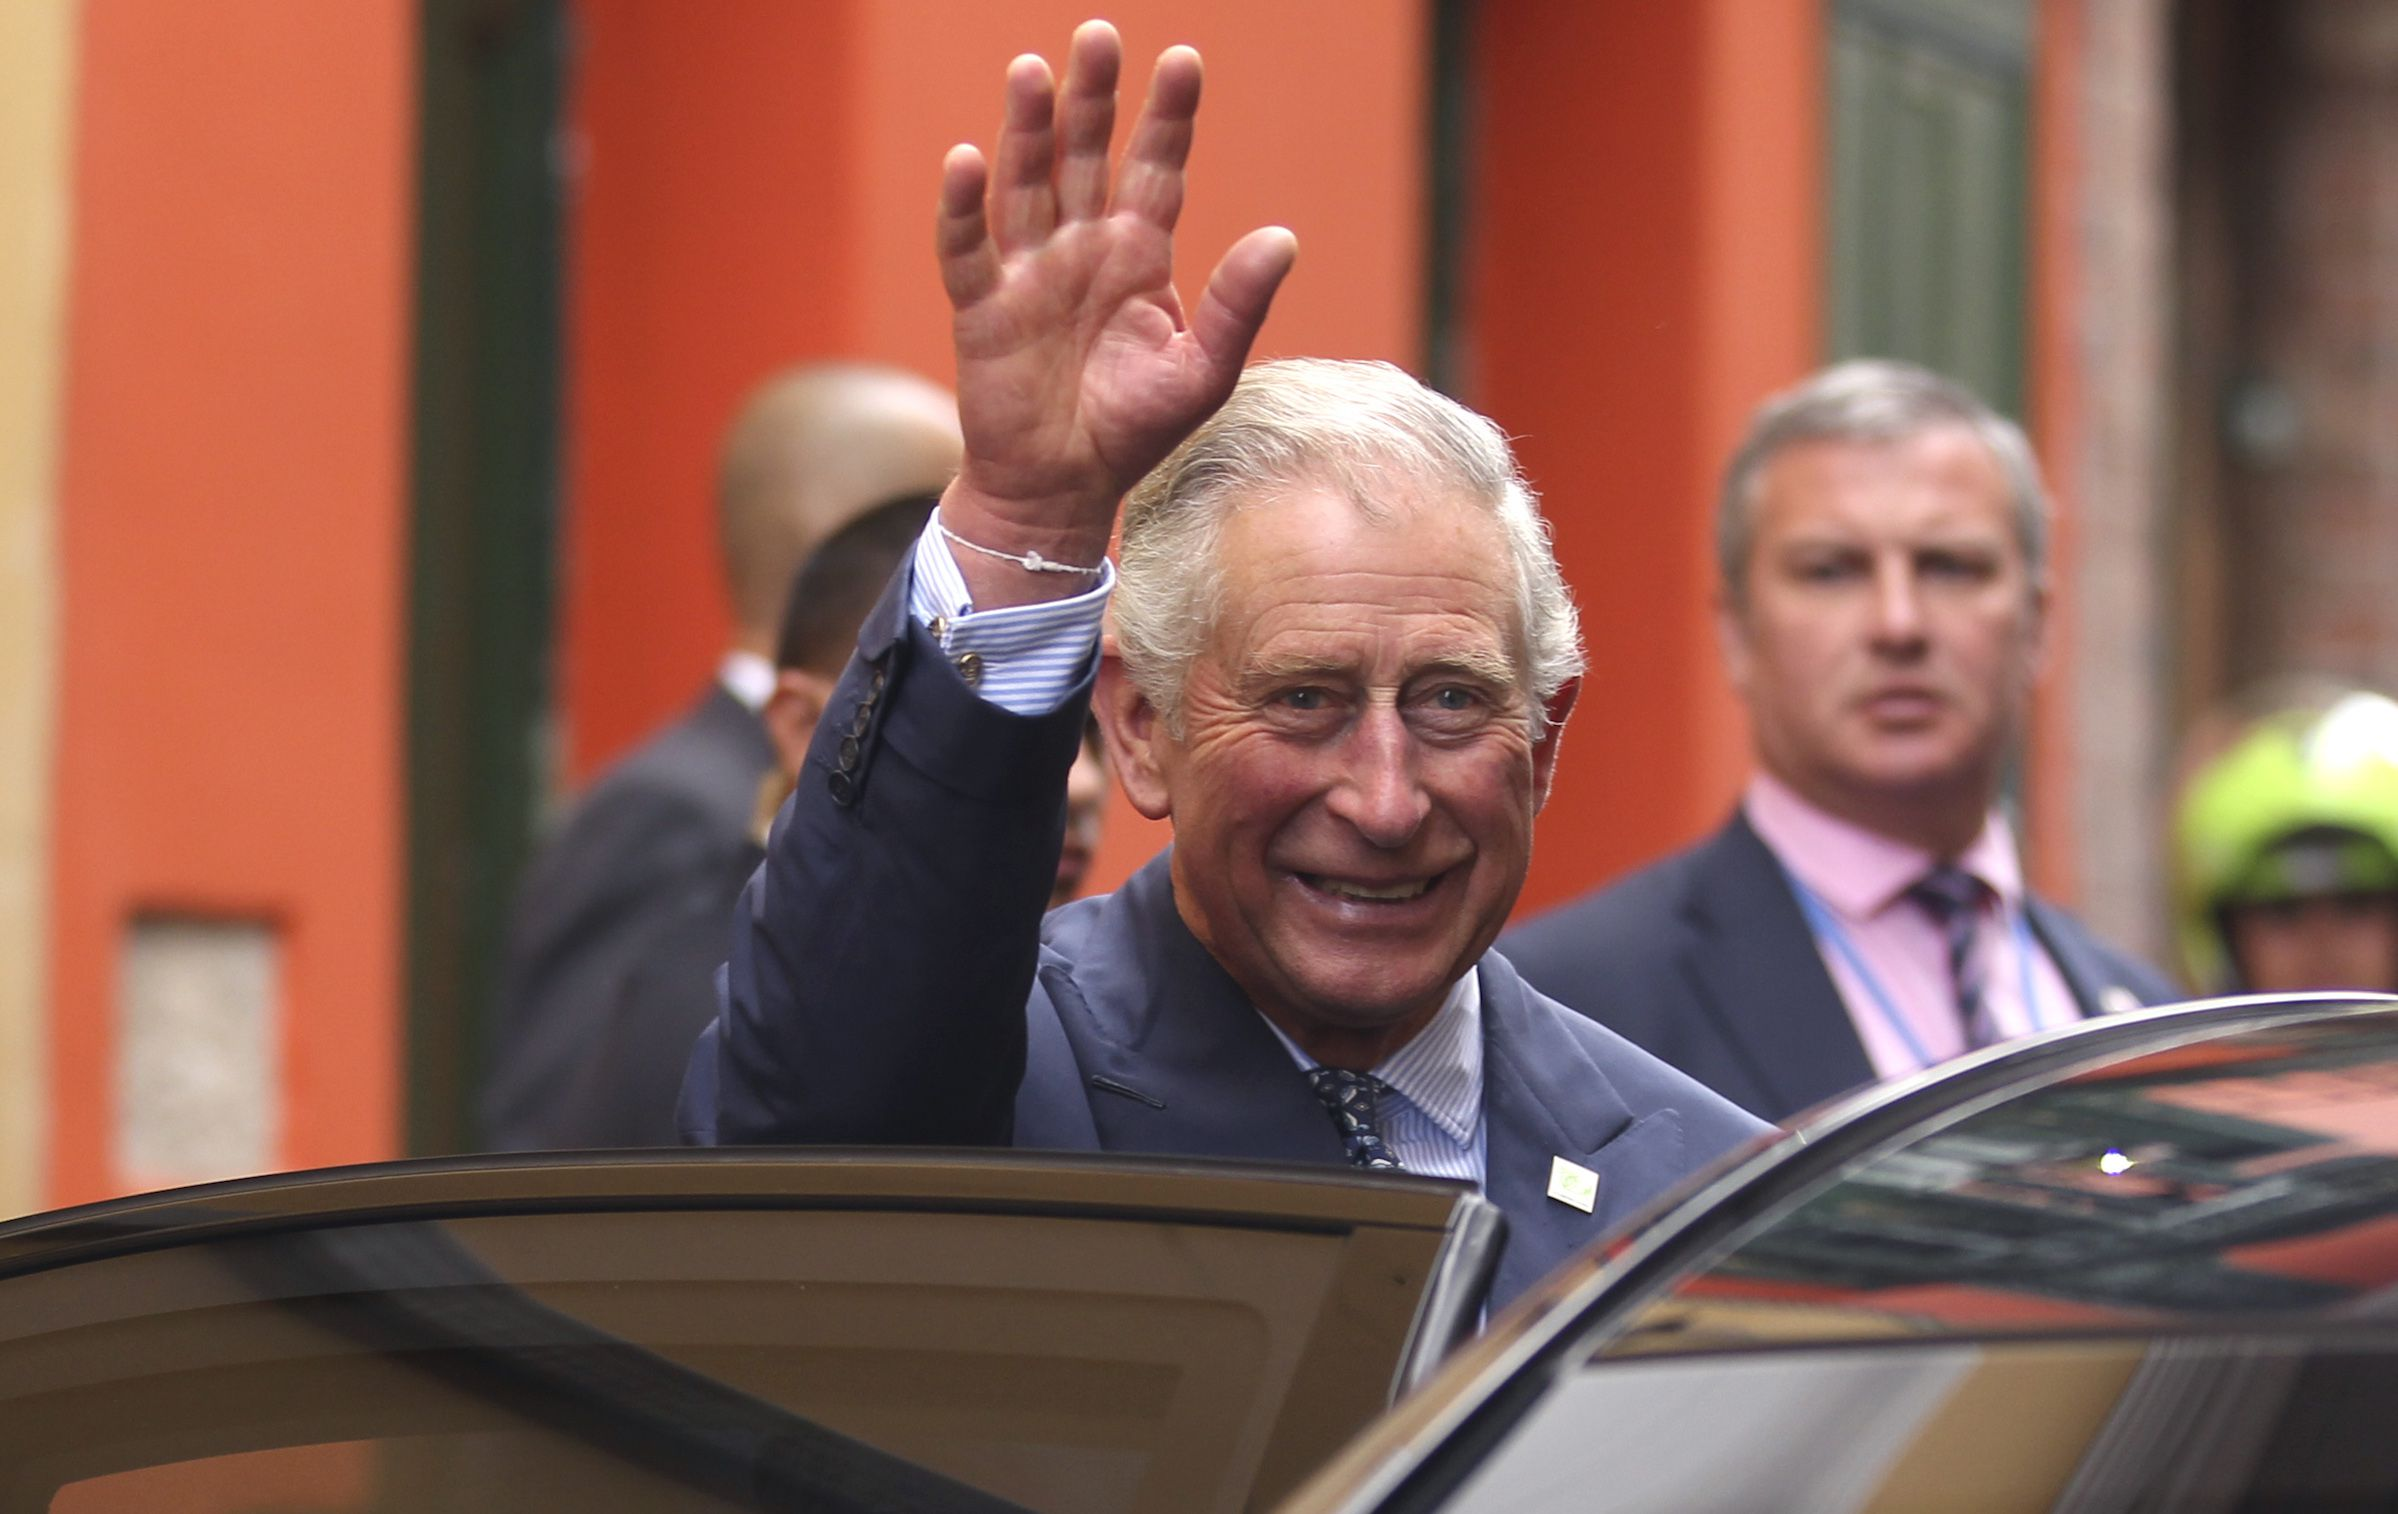 Britain's Prince Charles waves after visiting an organic fair at the British Ambassador's residence in Bogota October 29, 2014. Britain's Prince Charles and his wife Camilla, the Duchess of Cornwall are in Colombia for a four-day official visit. REUTERS/John Vizcaino  (COLOMBIA - Tags: POLITICS ROYALS ENTERTAINMENT) - RTR4C33S